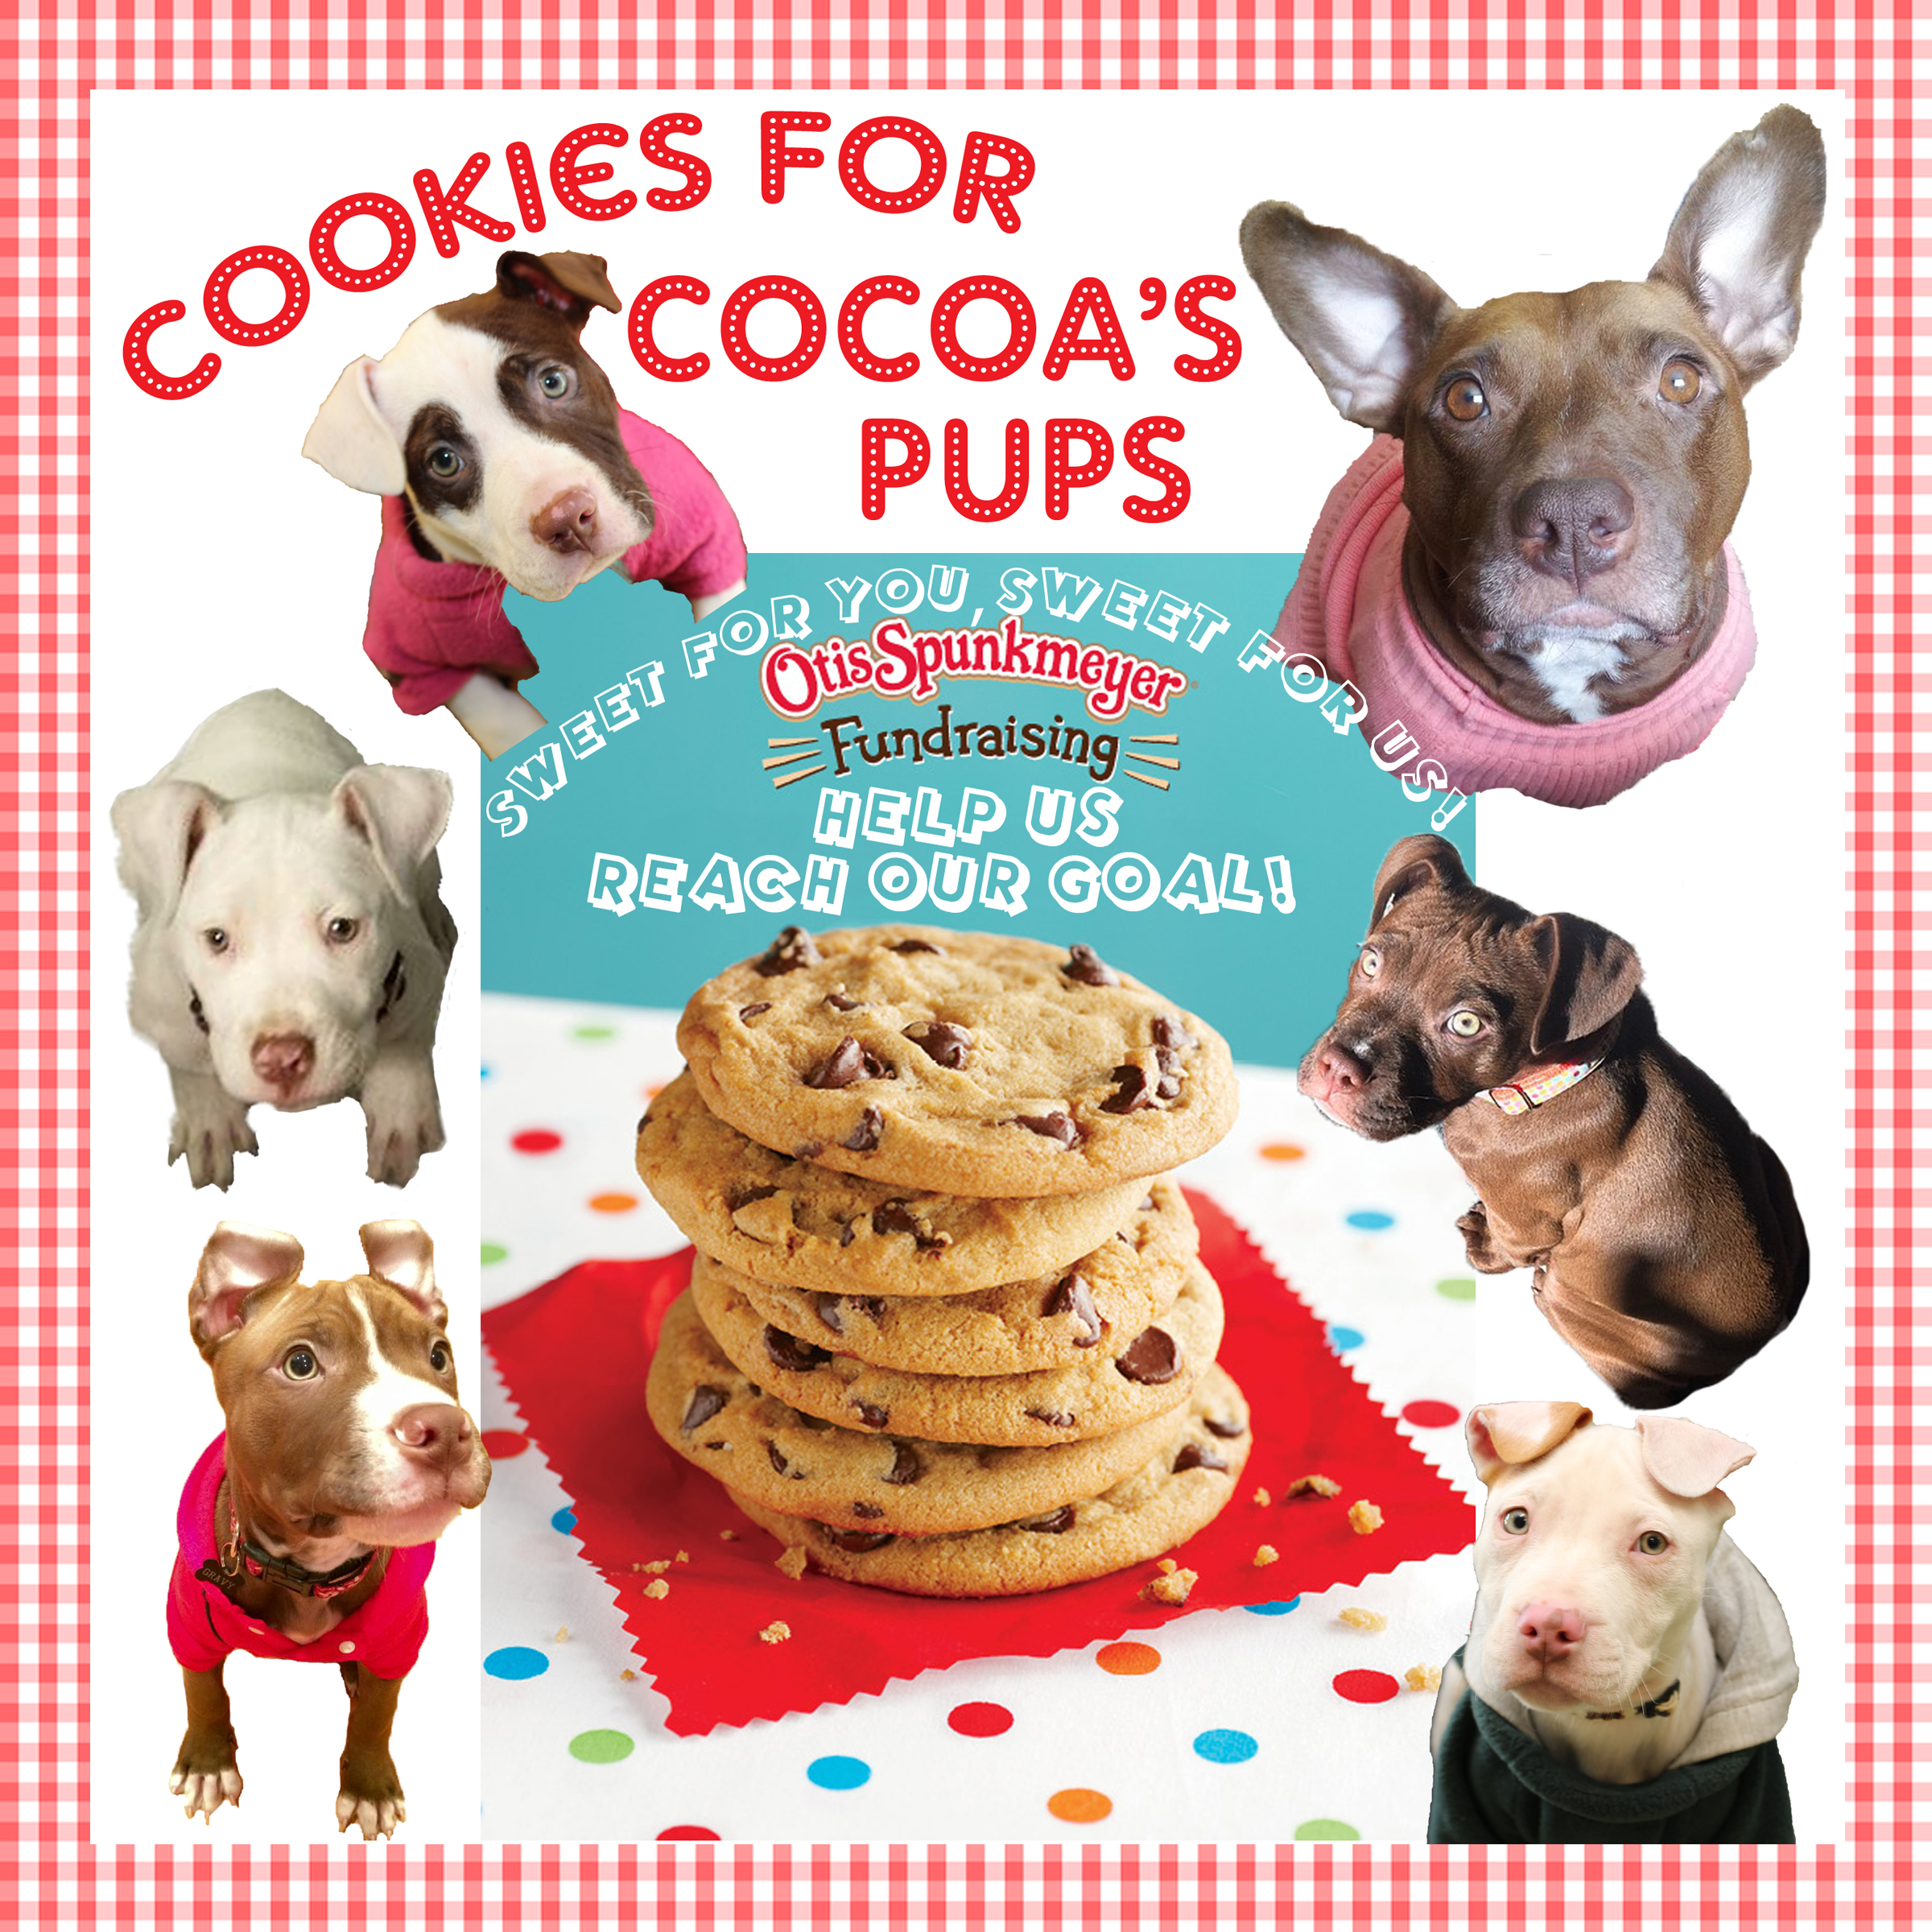 cookies for cocoa's pups framed.jpg